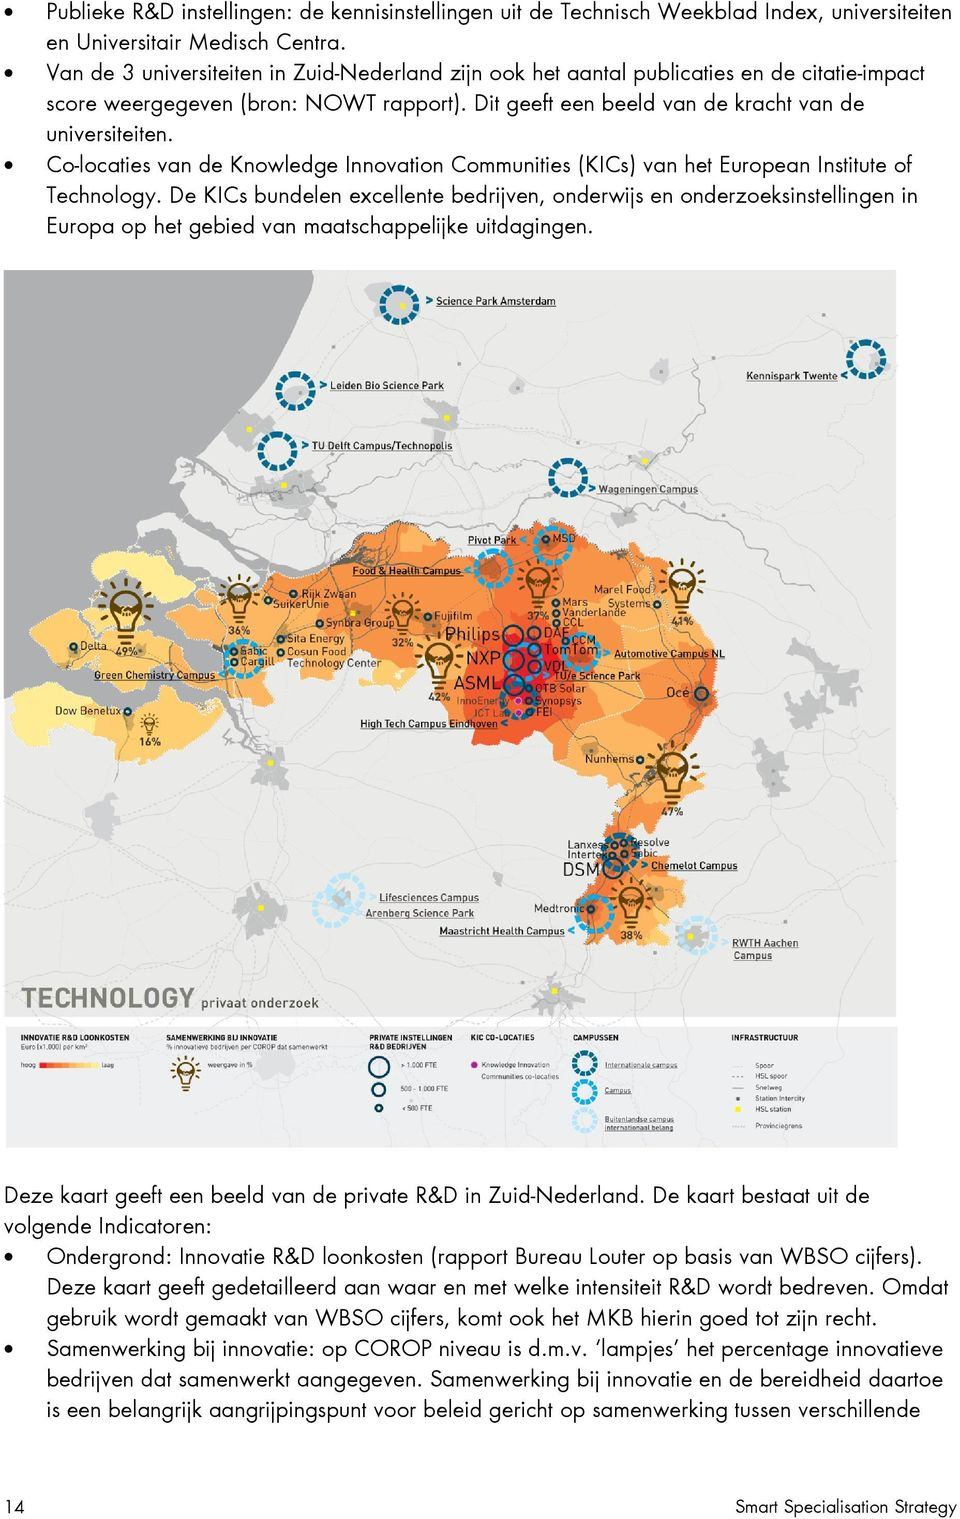 Co-locaties van de Knowledge Innovation Communities (KICs) van het European Institute of Technology.